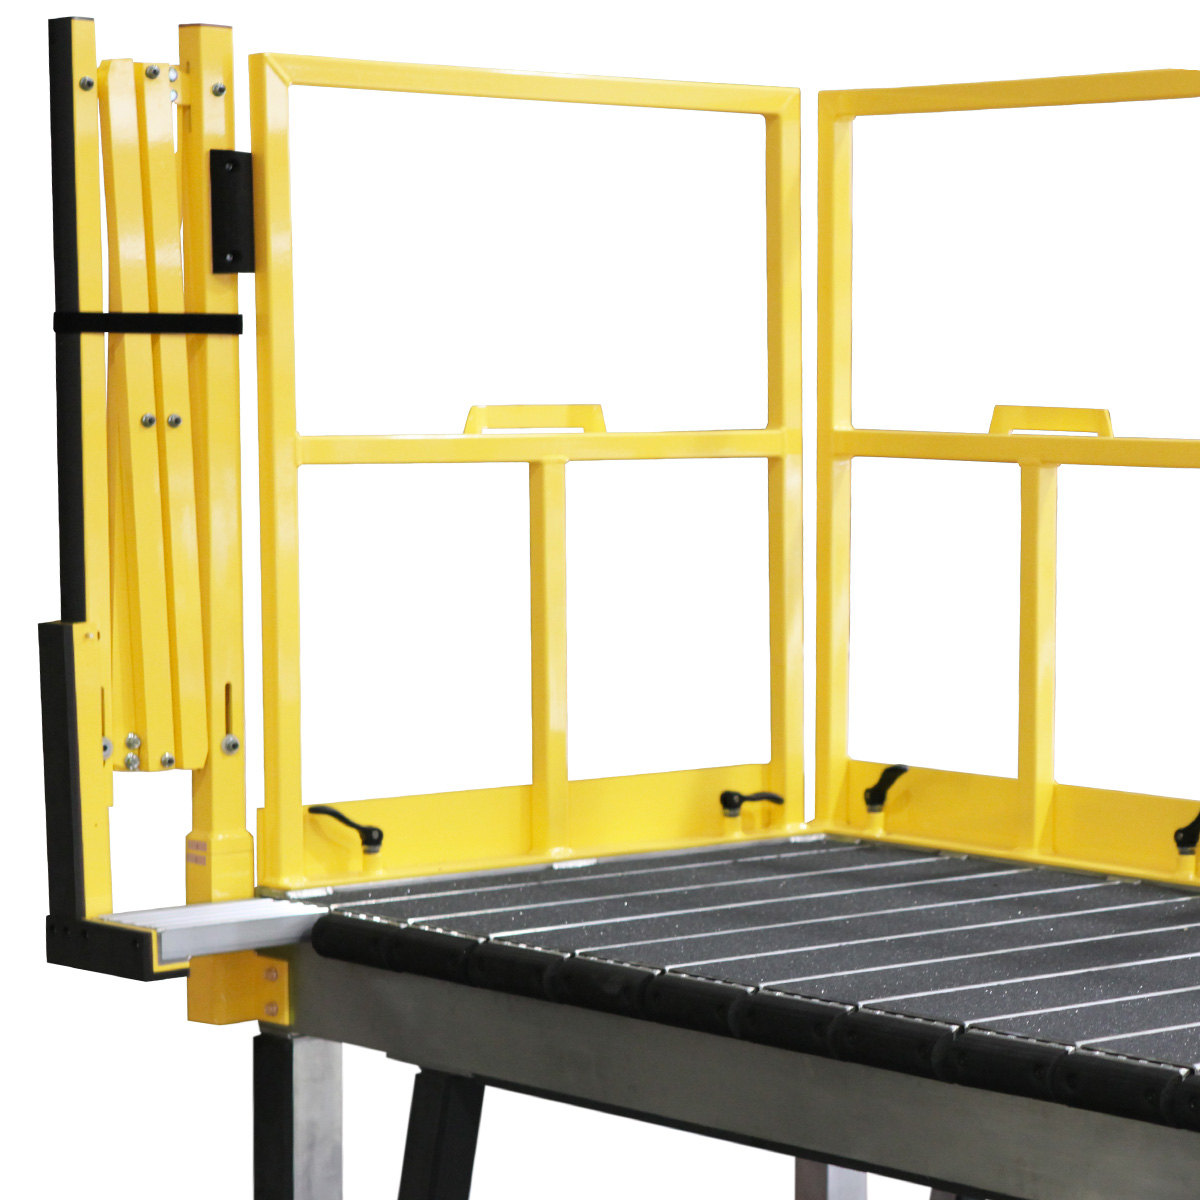 CH-47 Chinook Helicopter – Daily Maintenance OSHA compliant, portable aluminum work platform with adjustable guardrails and accordion extension guardrails that automatically extend with cantilever deck extensions for 100% fall prevention.